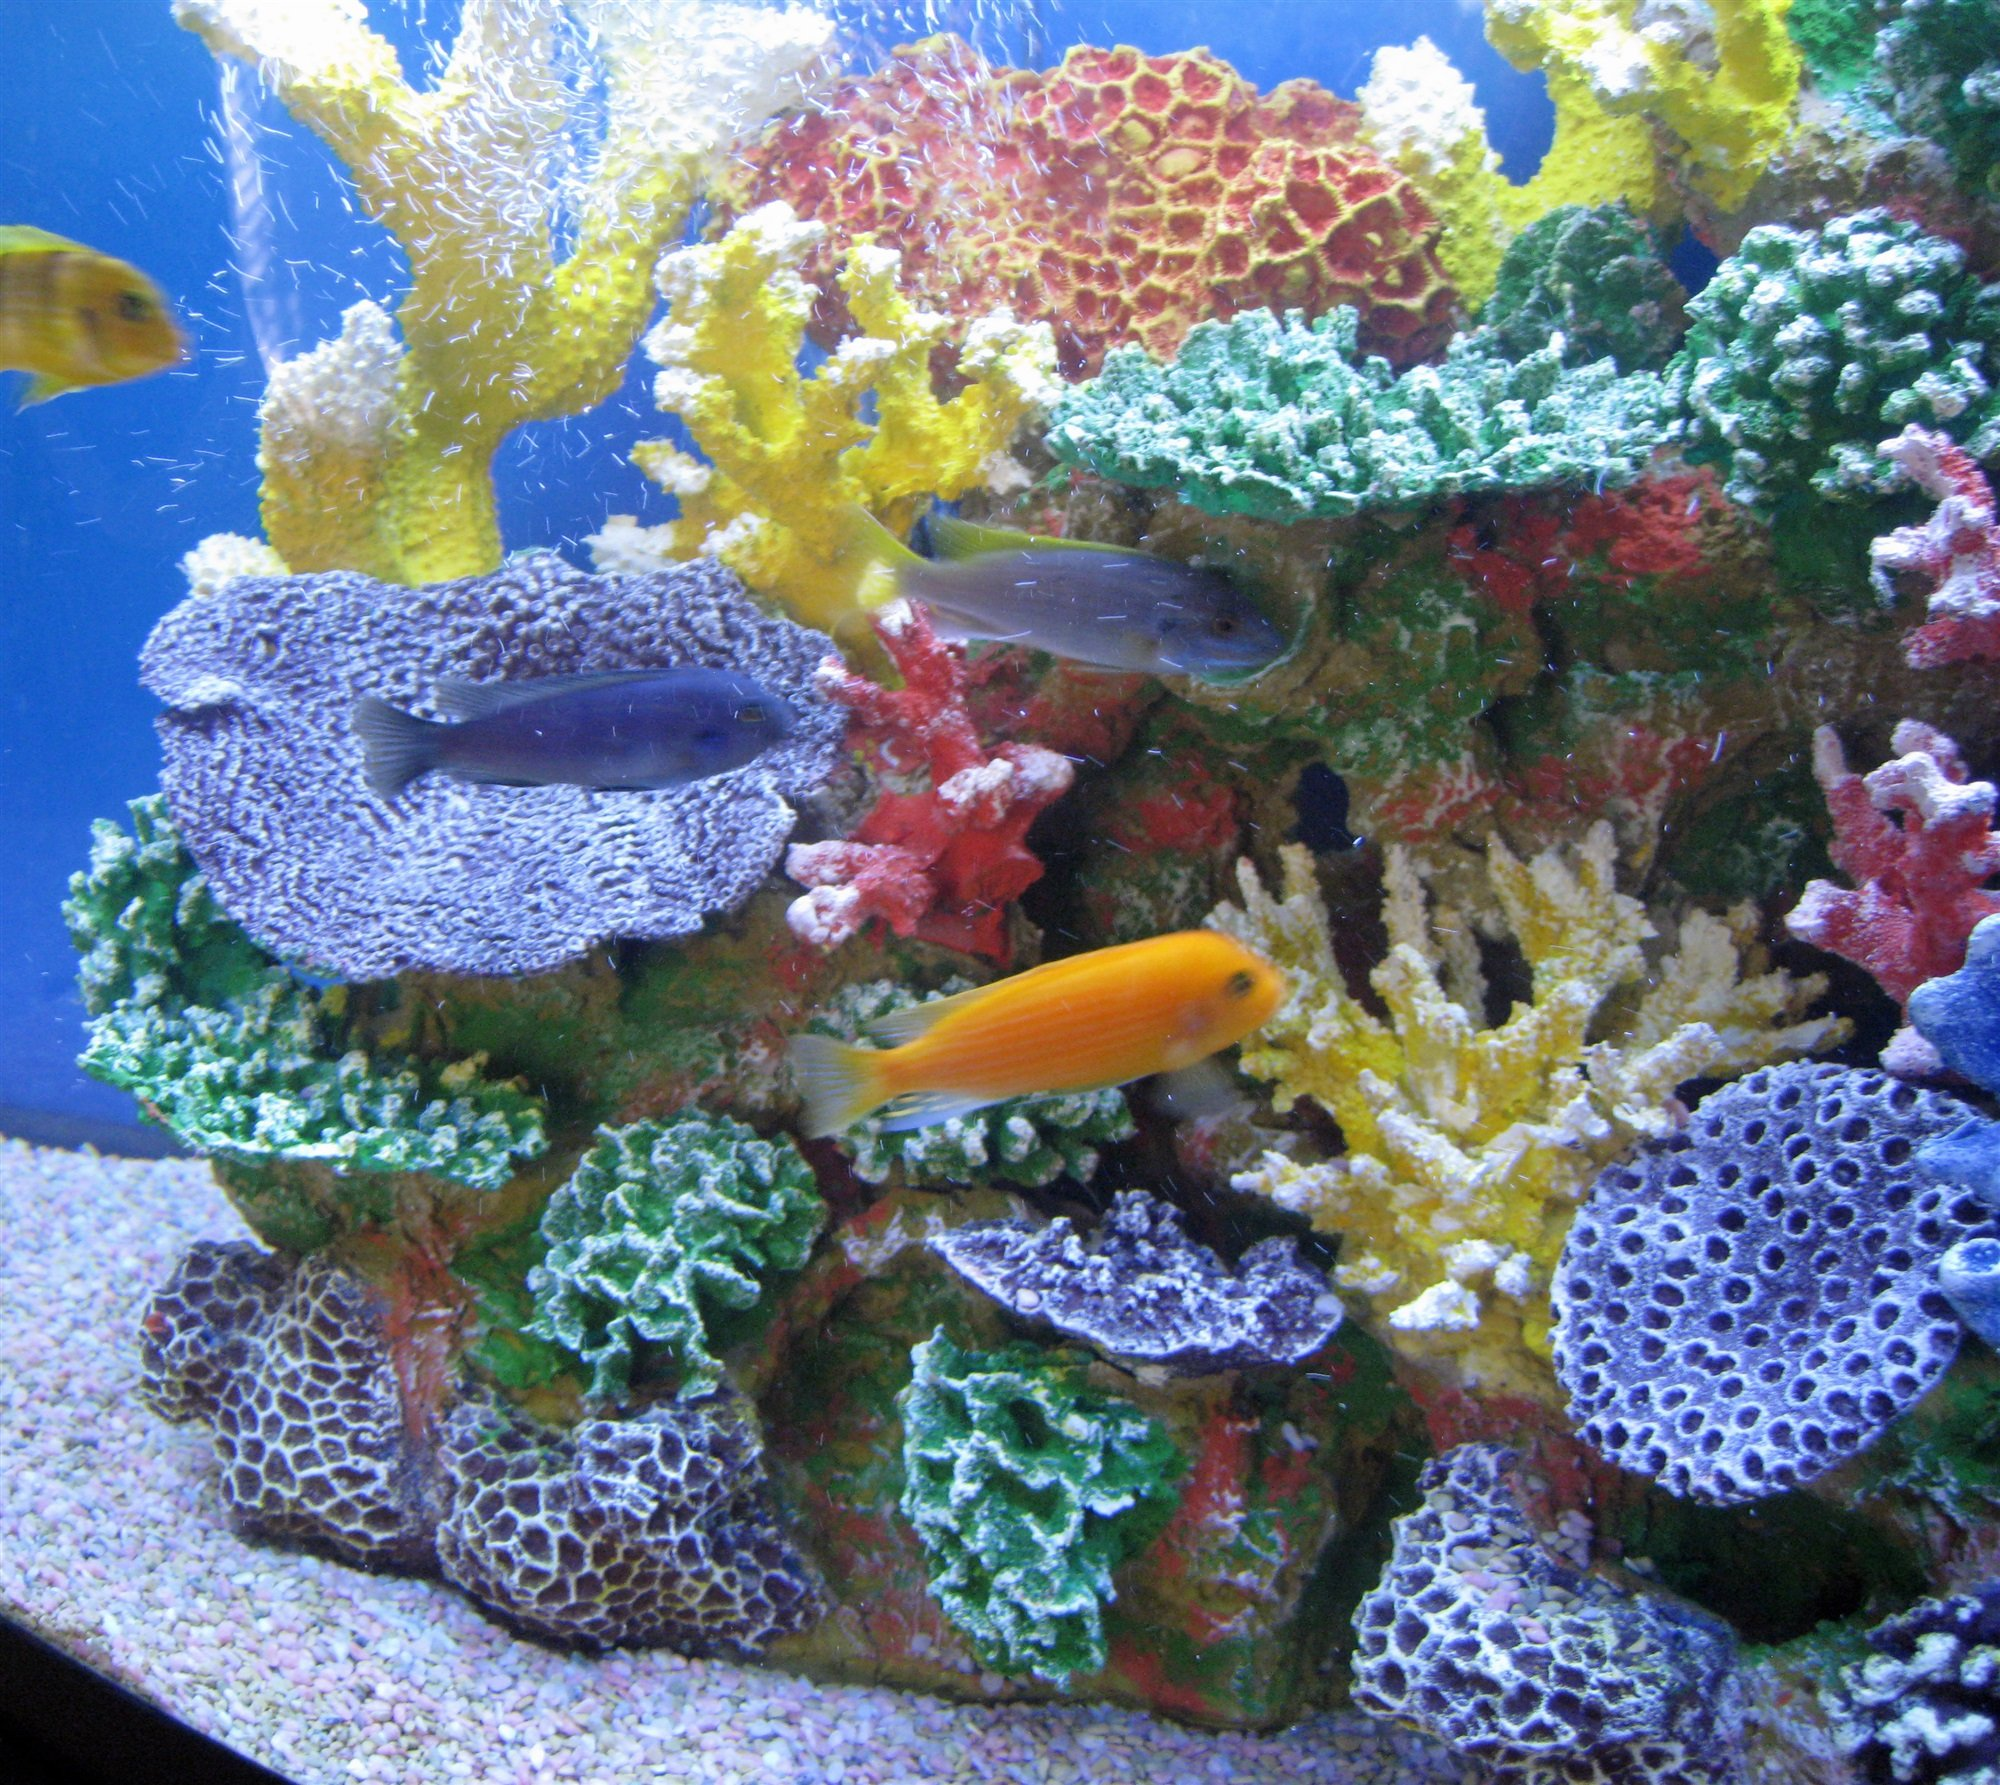 Instant Reef DM058 Artificial Coral Inserts Decor, Fake Coral Reef Decorations for Colorful Freshwater Fish Aquariums, Marine and Saltwater Fish Tanks 5